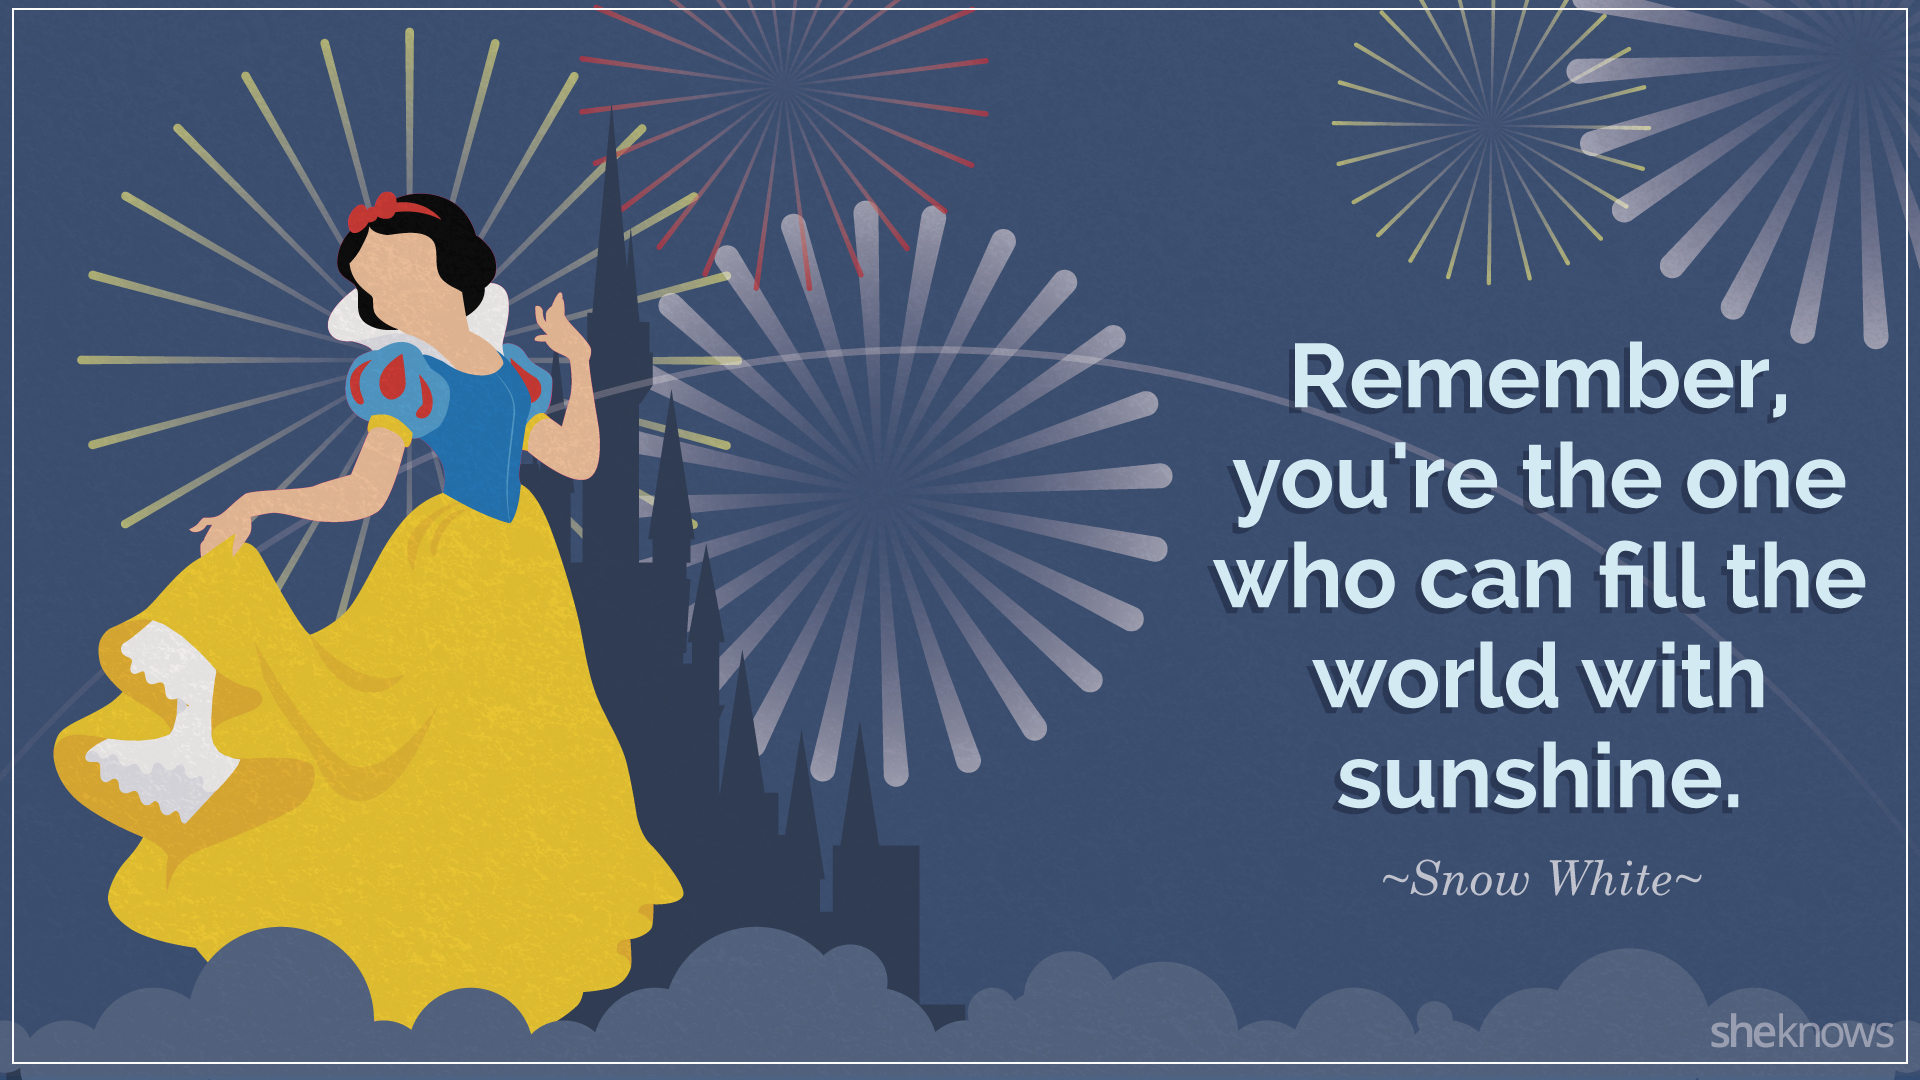 snow white inspirational quote